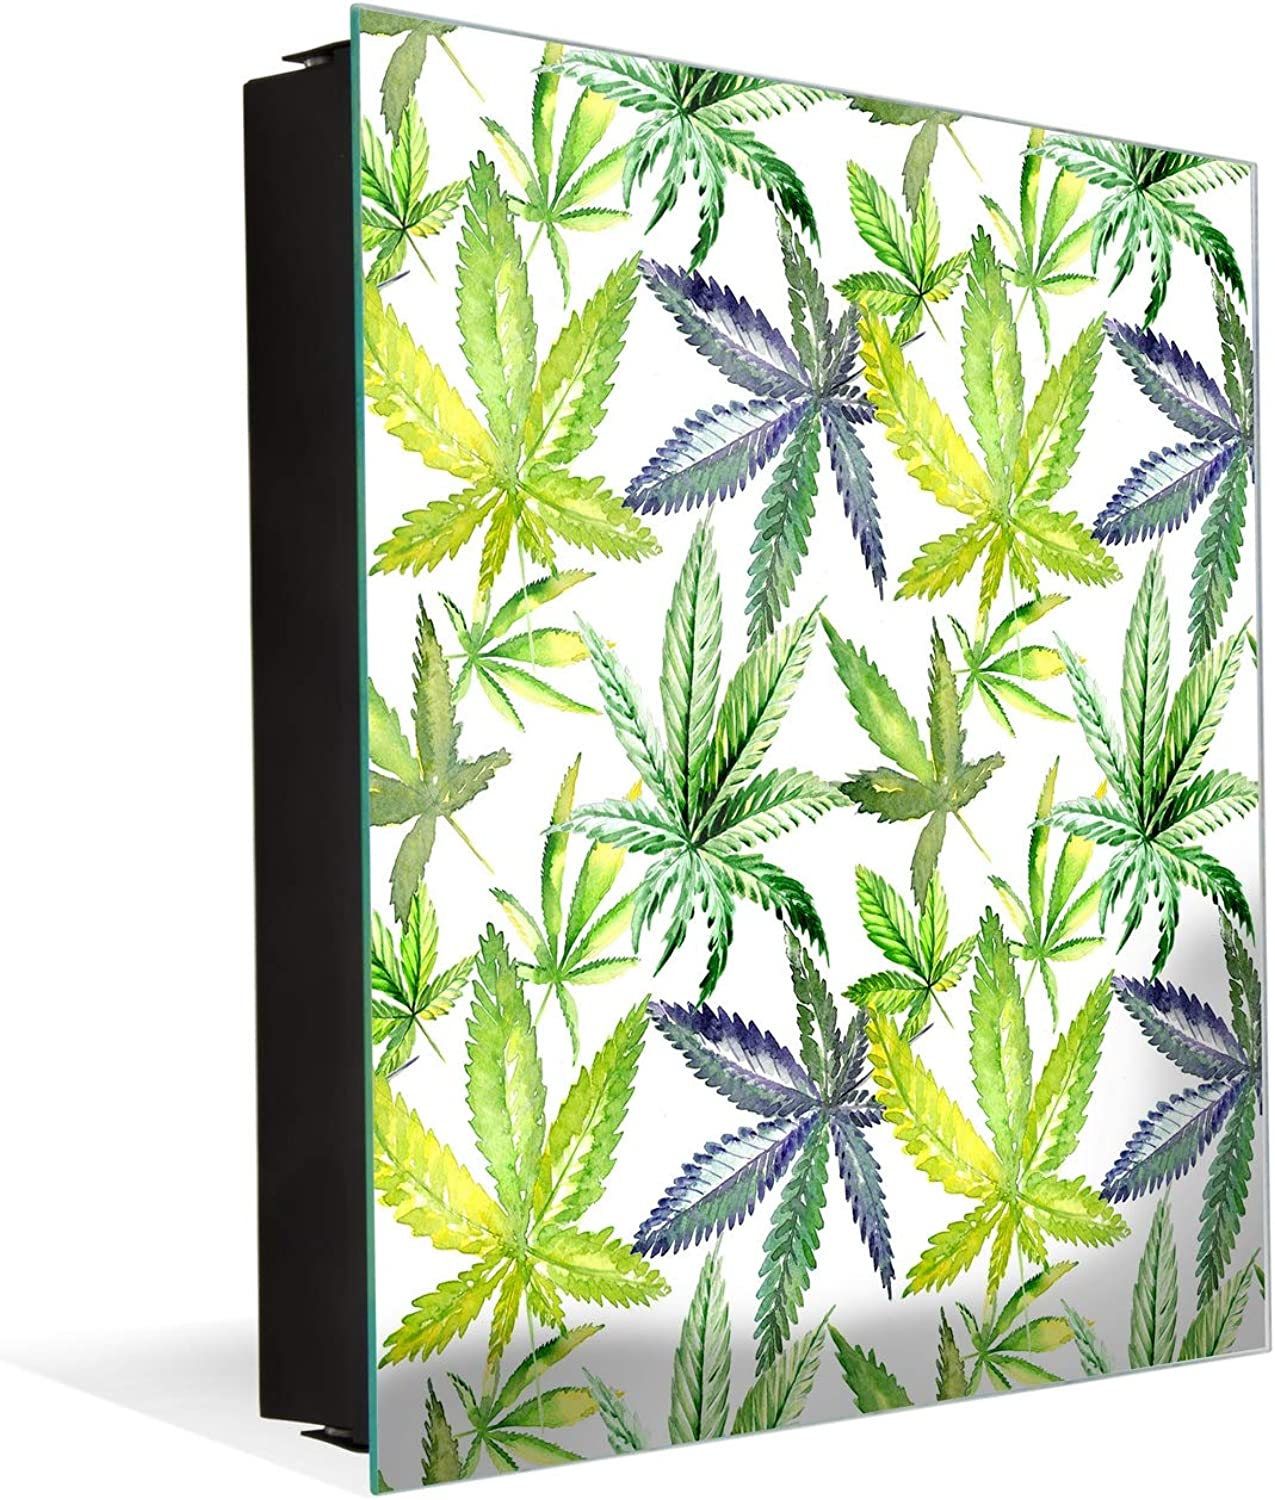 50 Keys Holder with Glass Magnetic Dry Erase Board K04 Wildflower Cannabis